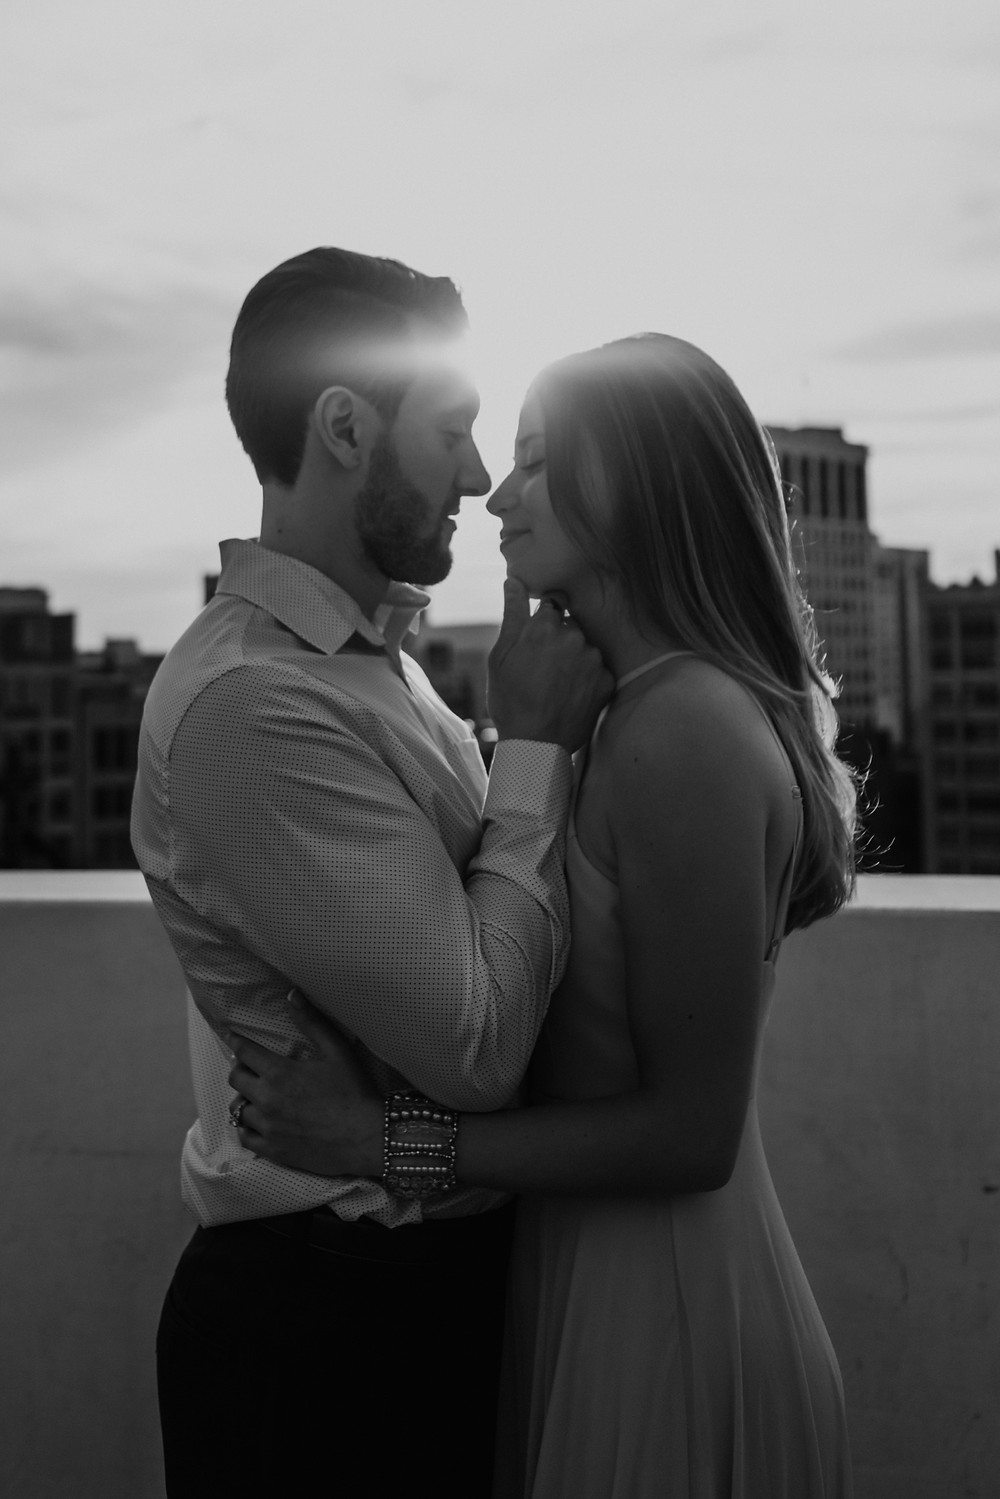 Black and white engagement photography. Photographed by Nicole Leanne Photography.